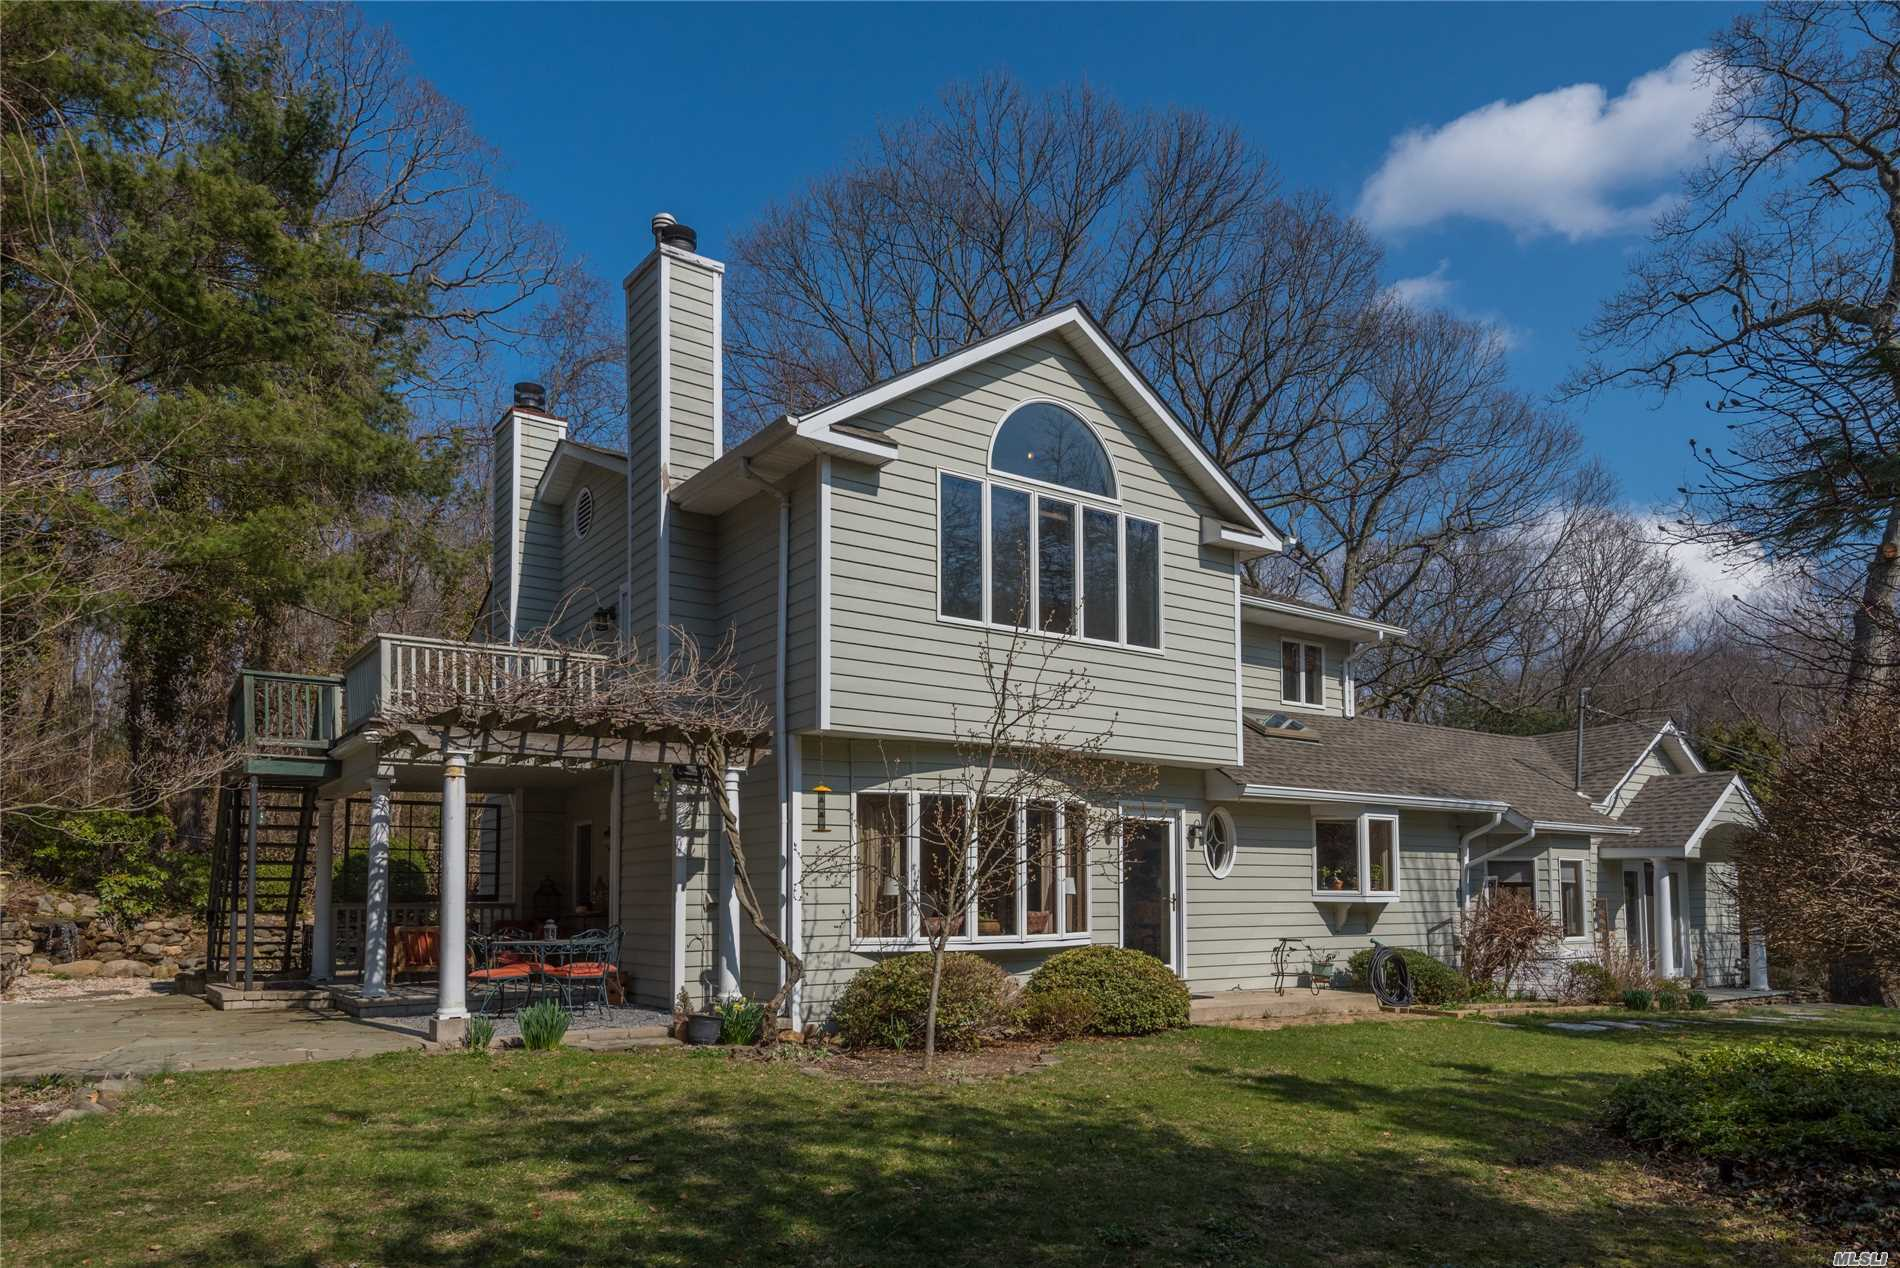 Gorgeous 3-Br, 3.5 Bth Colonial On .56 Acre. Light/Bright/Spacious W/Cathedral Ceilings And Charming Details. Great Rm W/Wood Floors, Walls Of Windows & Wet Bar. Upd Oak/Granite Kitchen W/Professional Grade Ss Appls. Spacious Fr W/French Door & Fpl. Mstr Br, W/Full Bth, Wic & Deck. Updates Incl: Eik, Bths, Andersons, Cac, Cvac, Gas Boiler/Hw Heater, Roof, Igs & More! Several Patios. Private Yard. Be The Proud Owner!